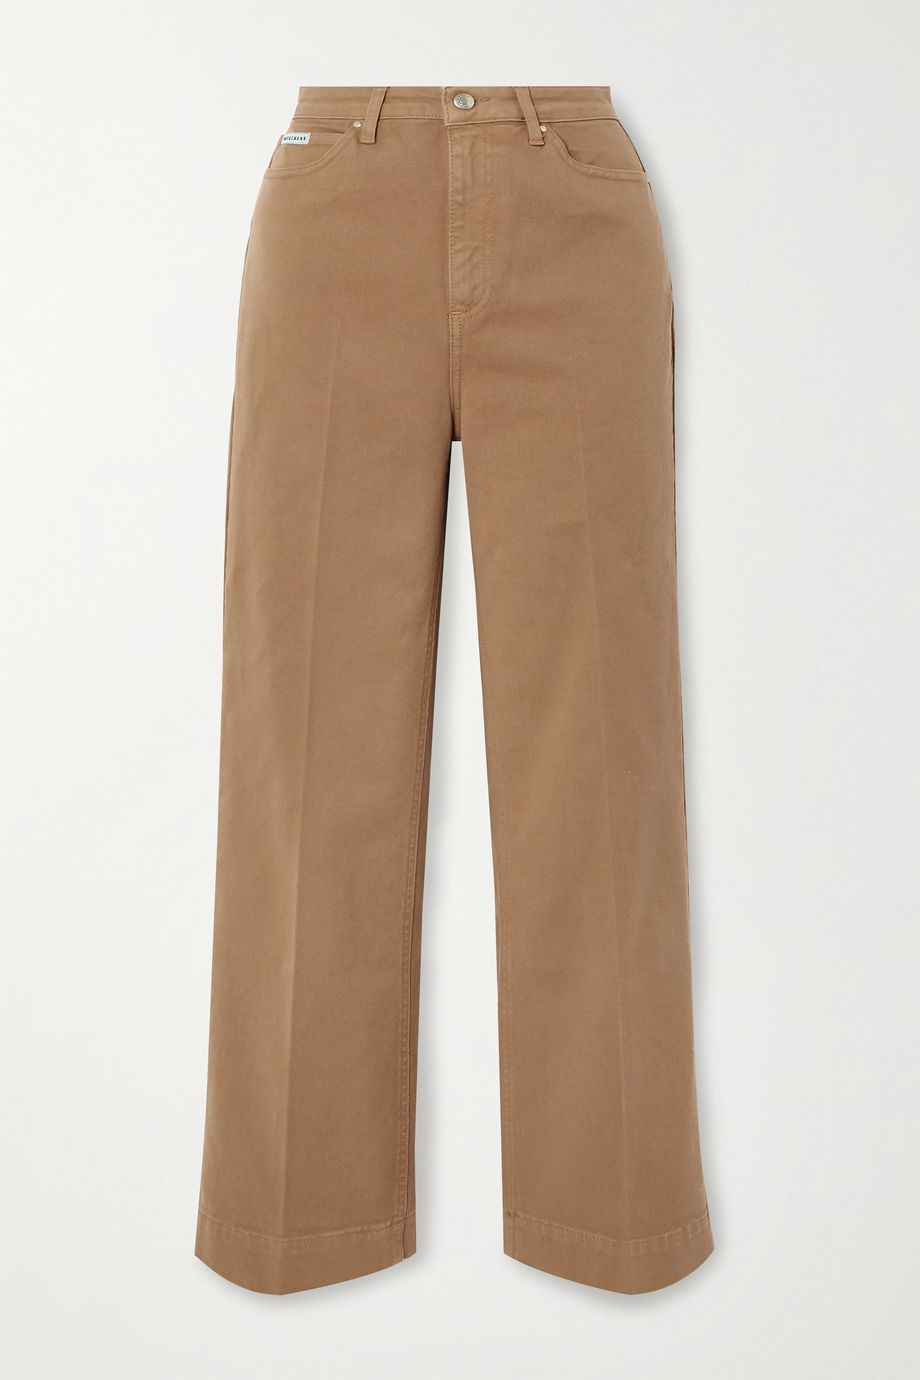 ALEXACHUNG Cropped cotton-blend twill wide-leg pants